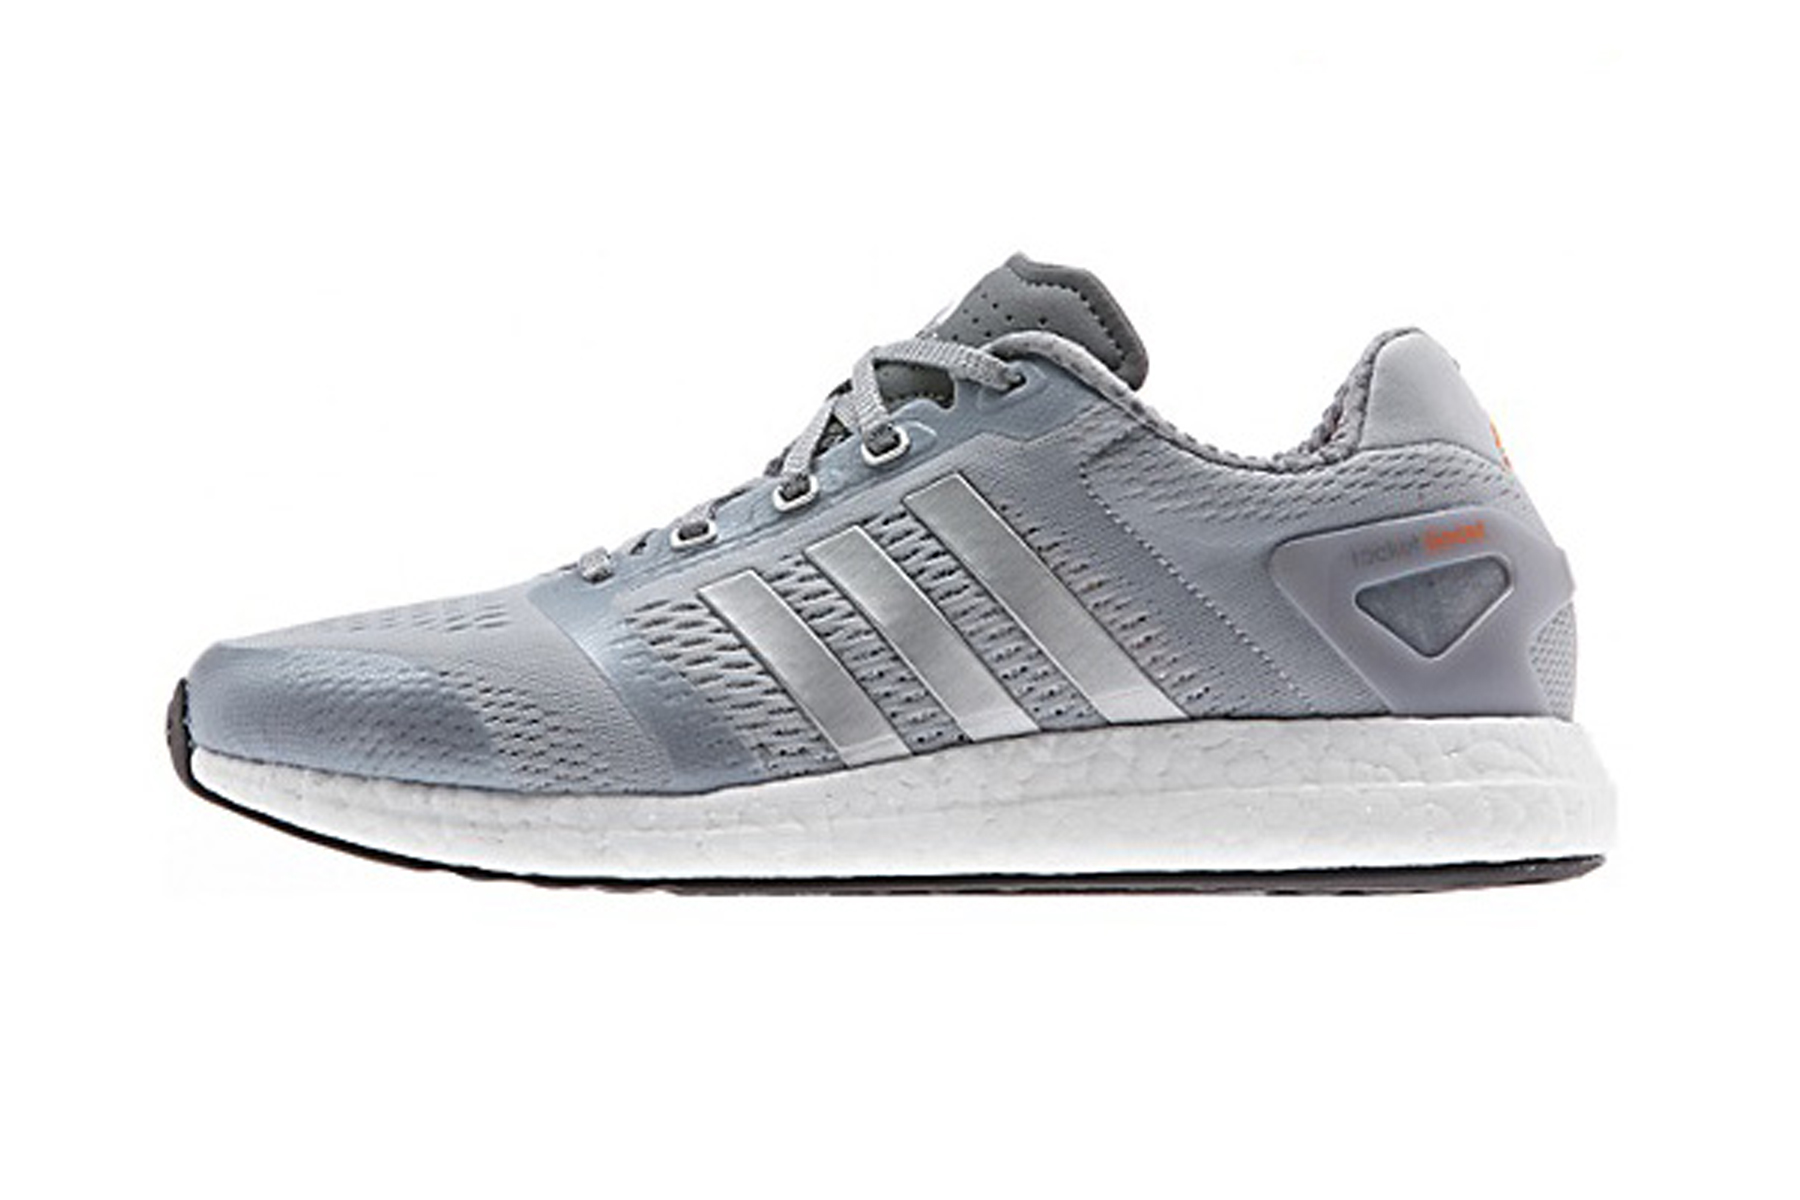 adidas Climachill Rocket Boost Pack